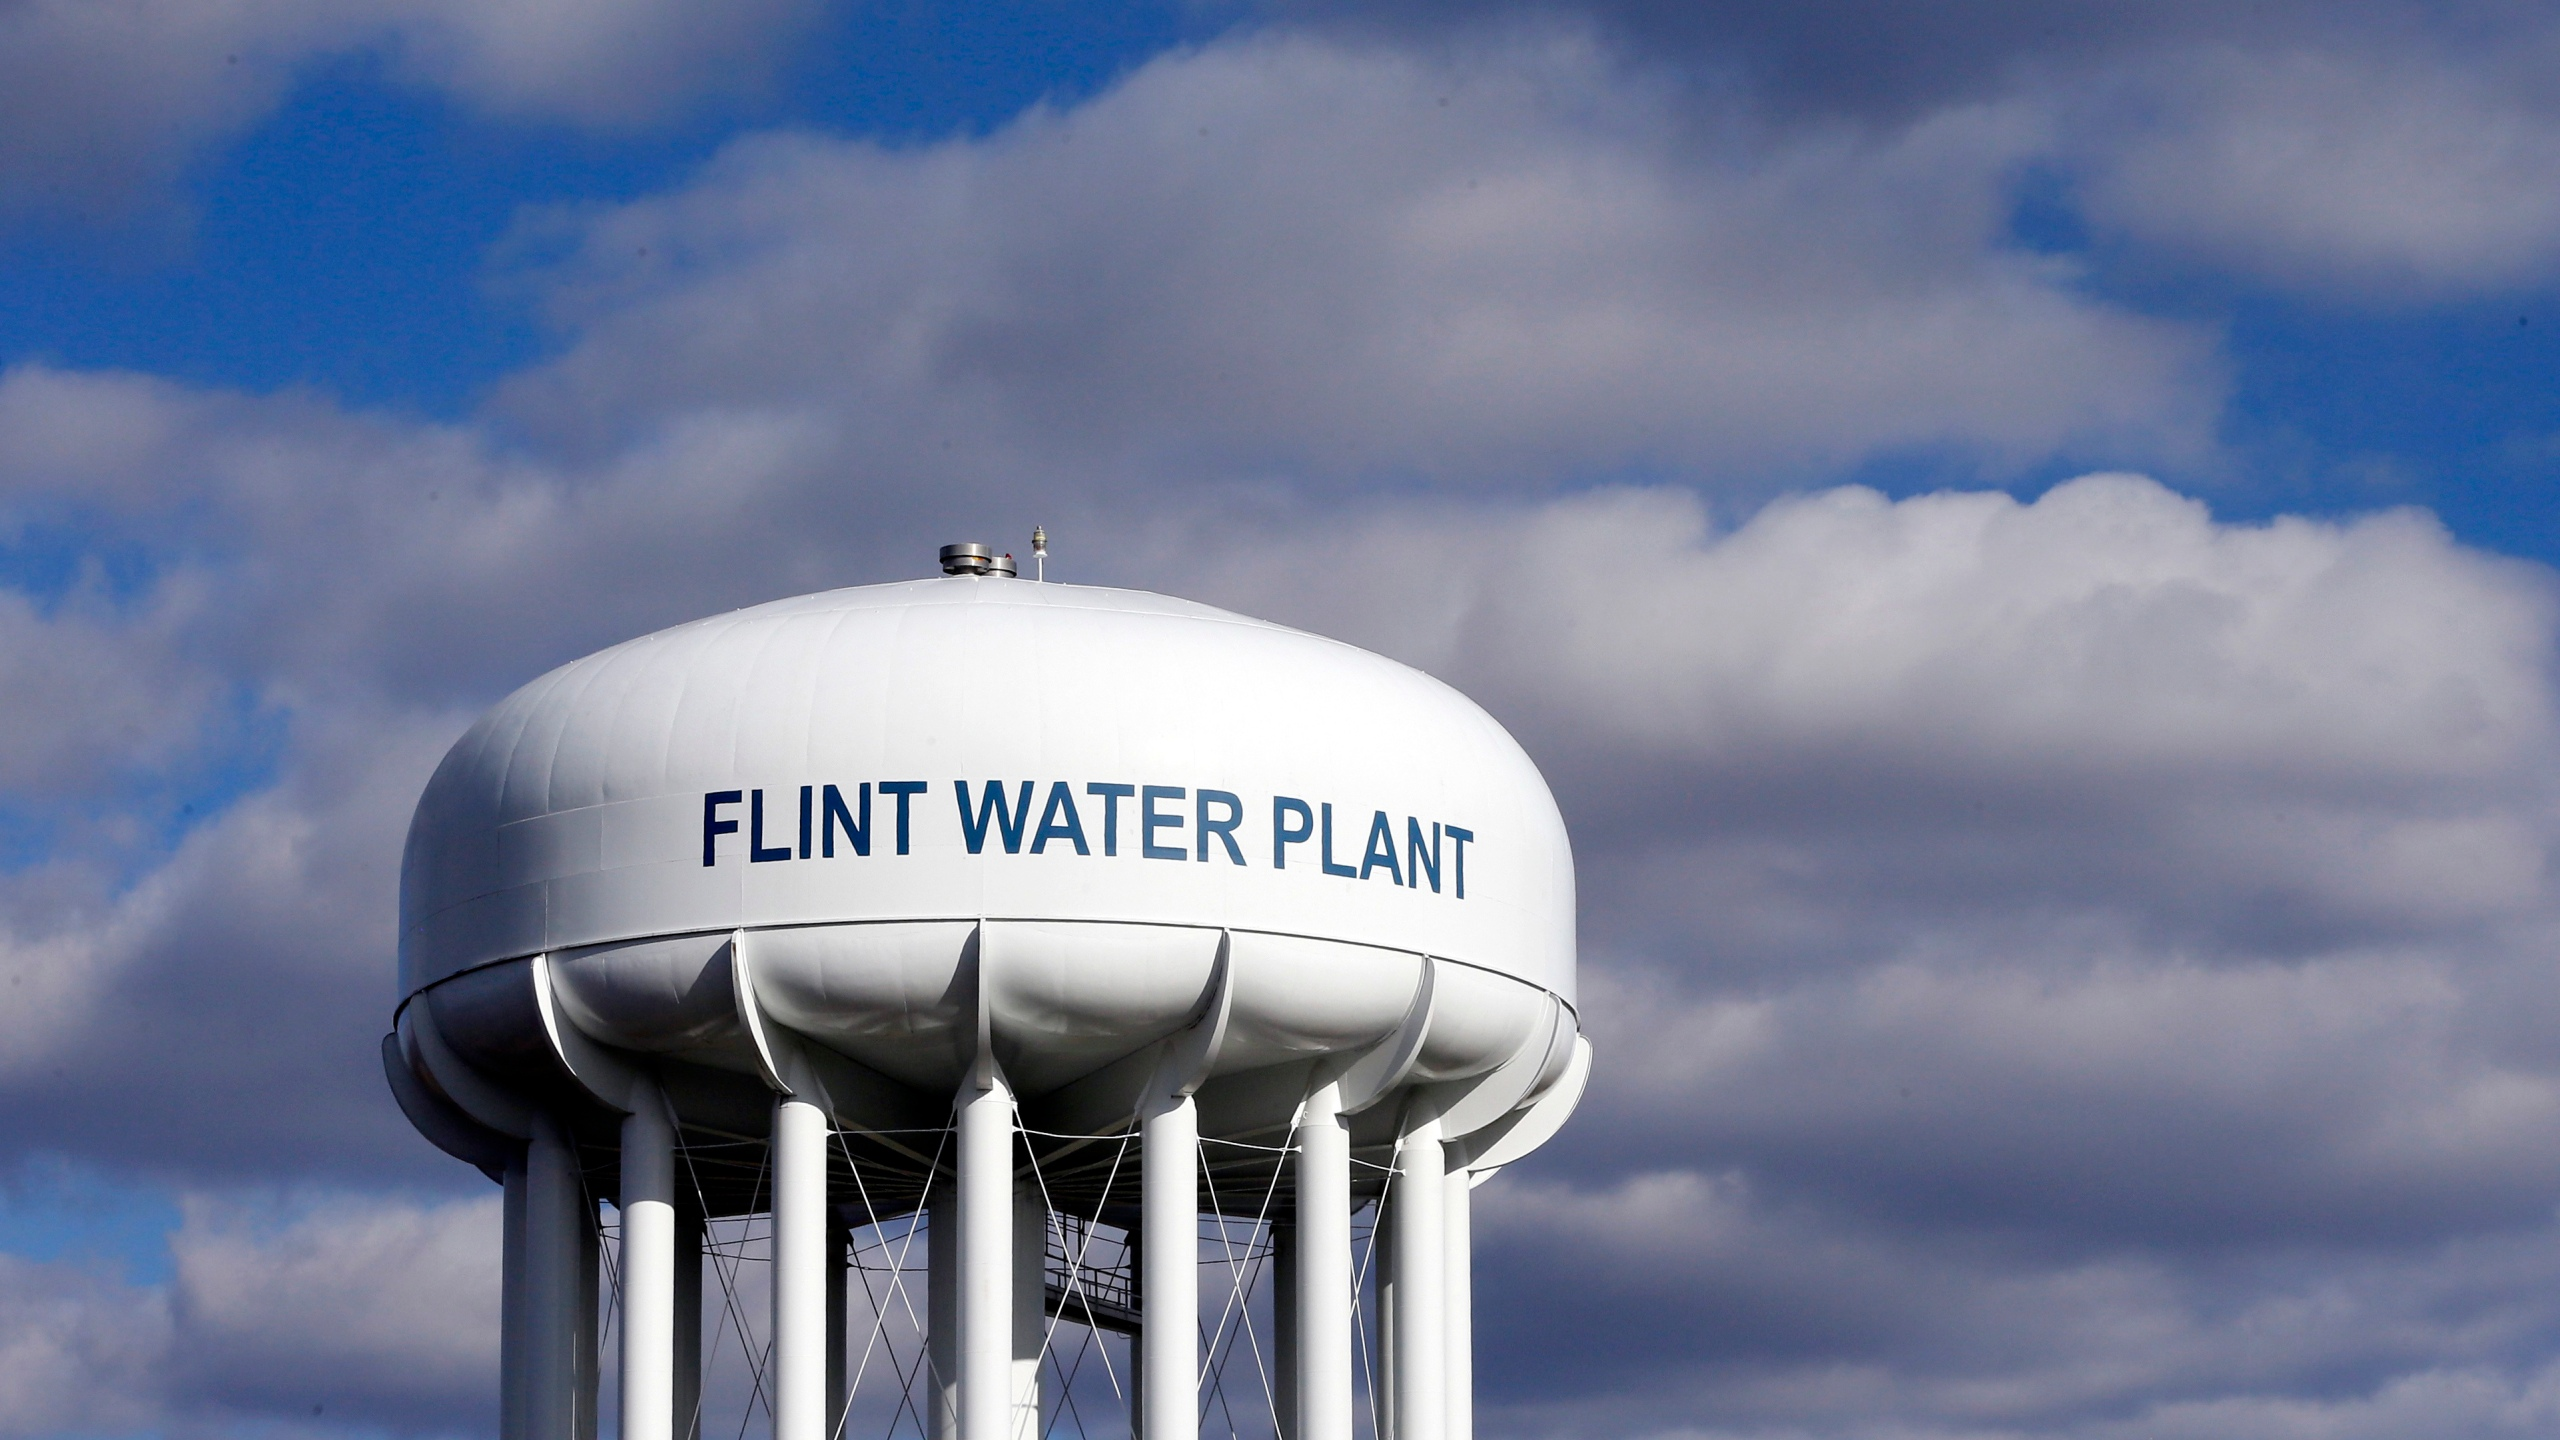 In this March 21, 2016, file photo, the Flint Water Plant water tower is seen in Flint, Michigan. (Carlos Osorio / Associated Press)